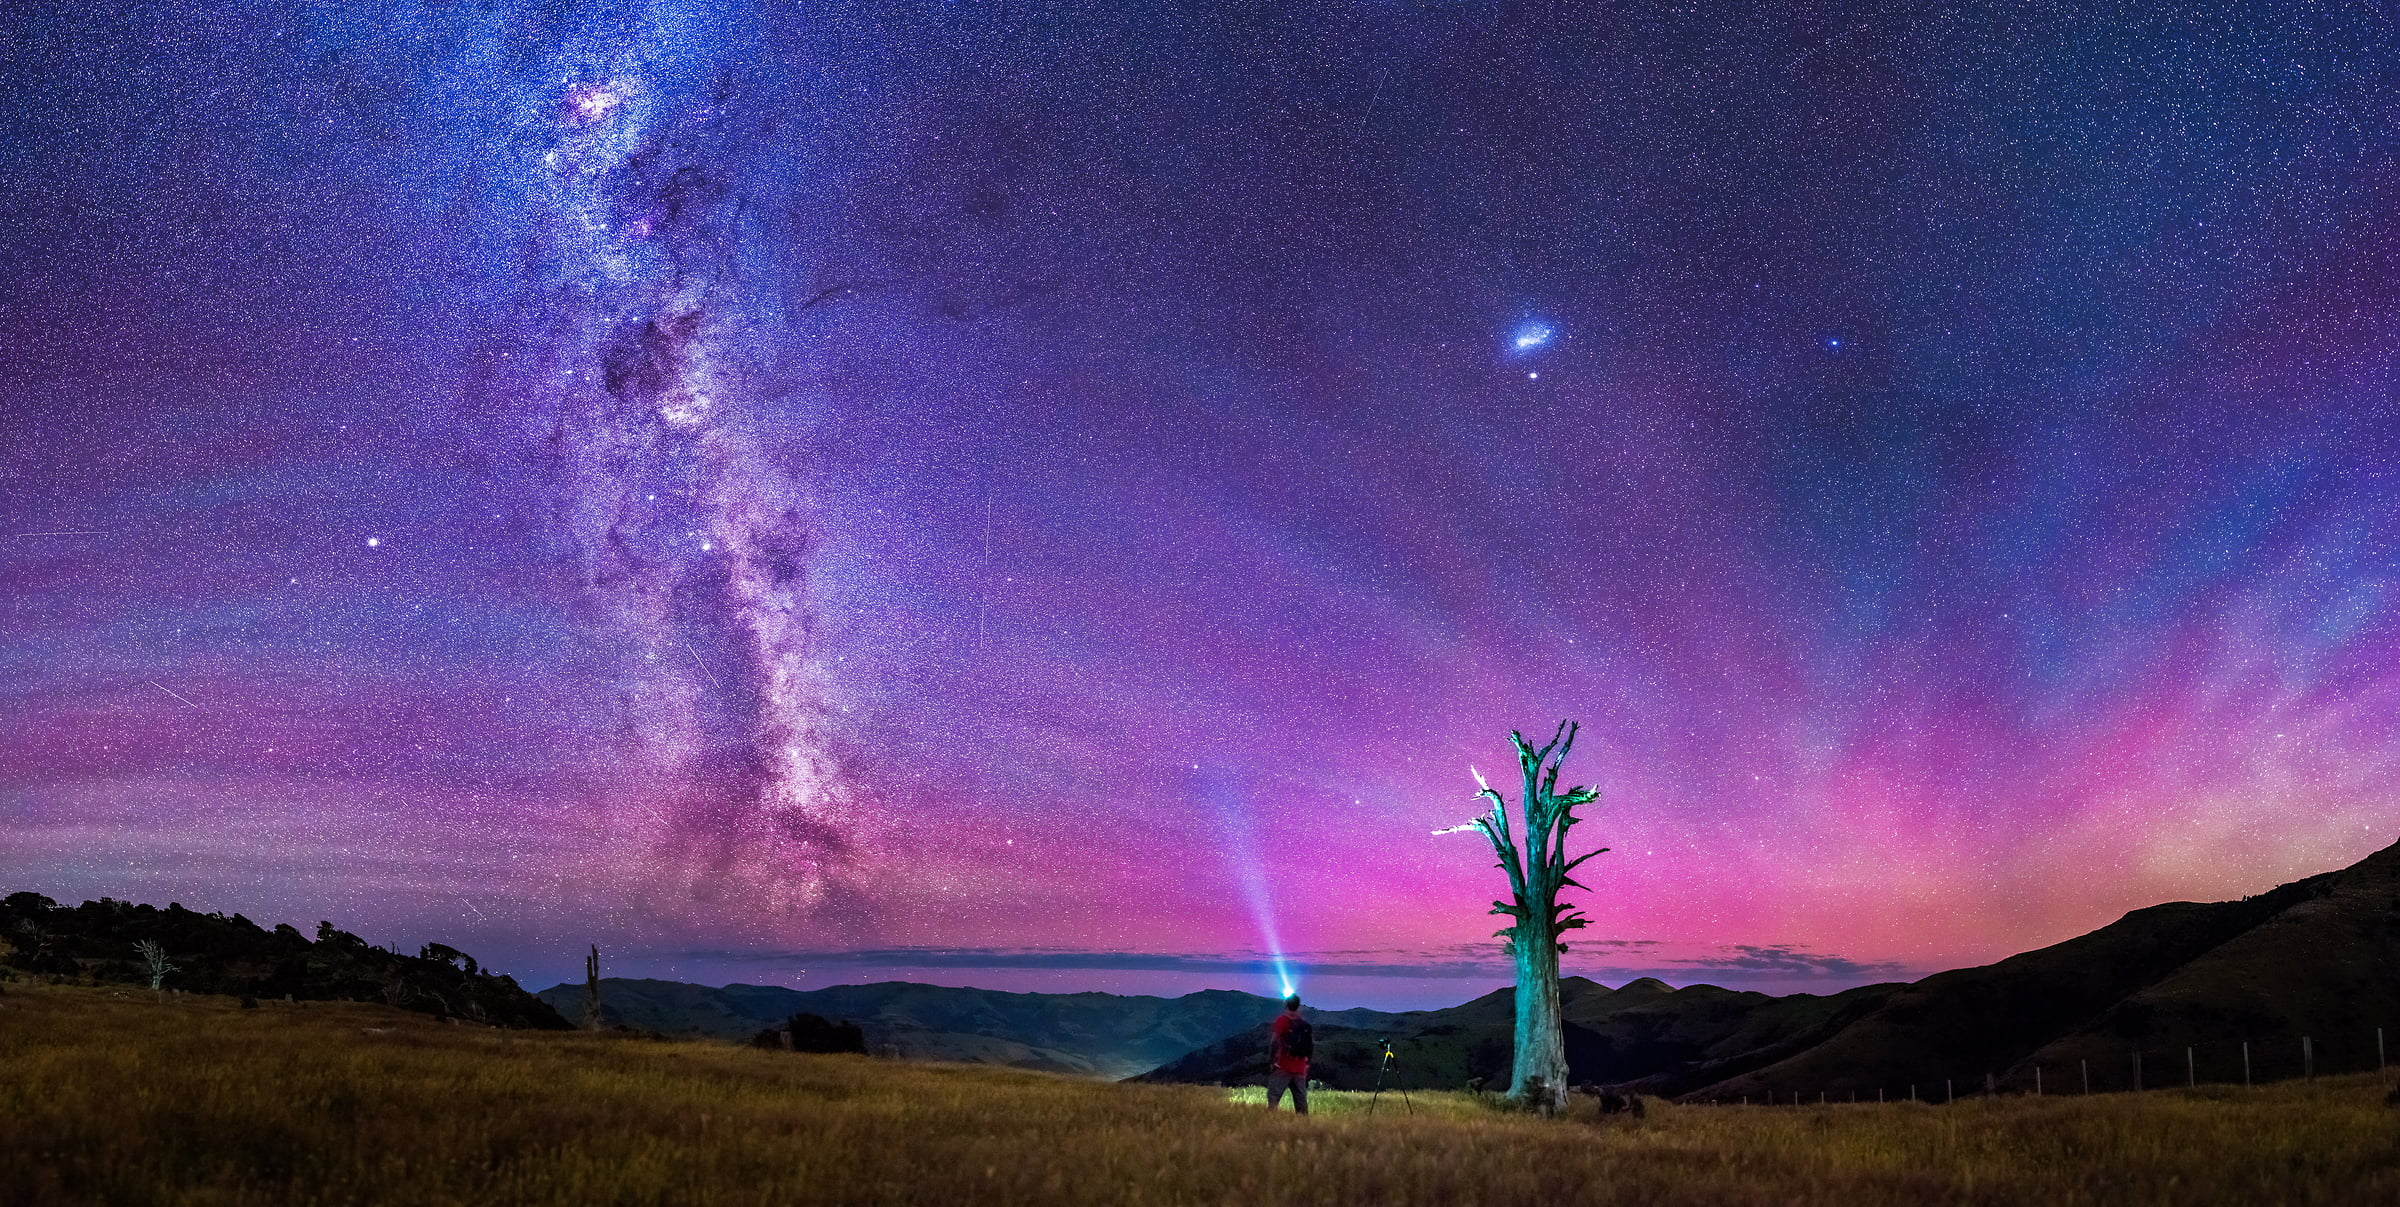 200 megapixels! A very high resolution, large-format VAST photo print of the night sky, milky way, and stars over a dead tree and a person photographing; fine art astrophotography landscape photo created by Paul Wilson in Port Levy Saddle, Canterbury, New Zealand